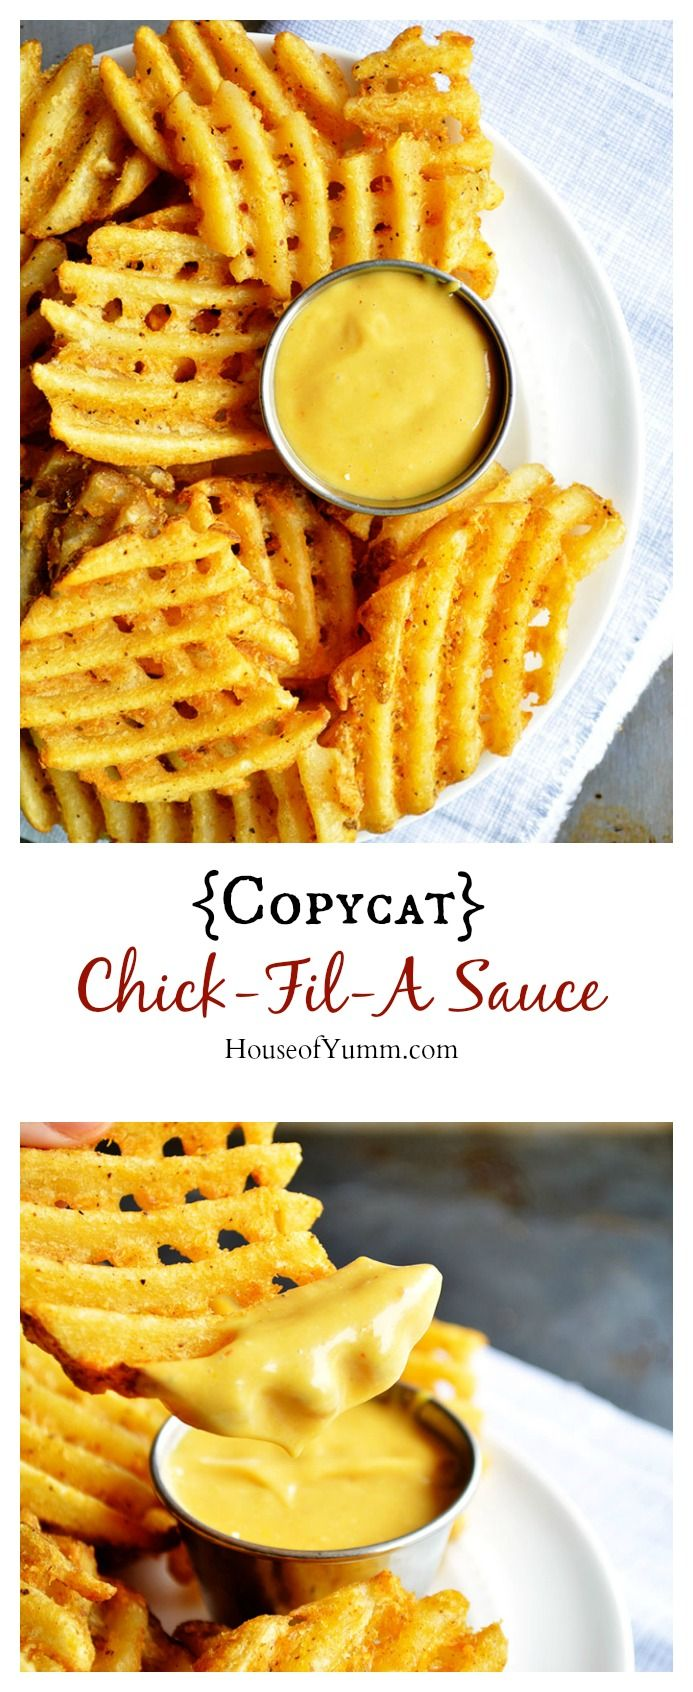 {Copycat} Chick-Fil-A Sauce _ I just want to swim in this stuff! This sauce is an absolute must!!!